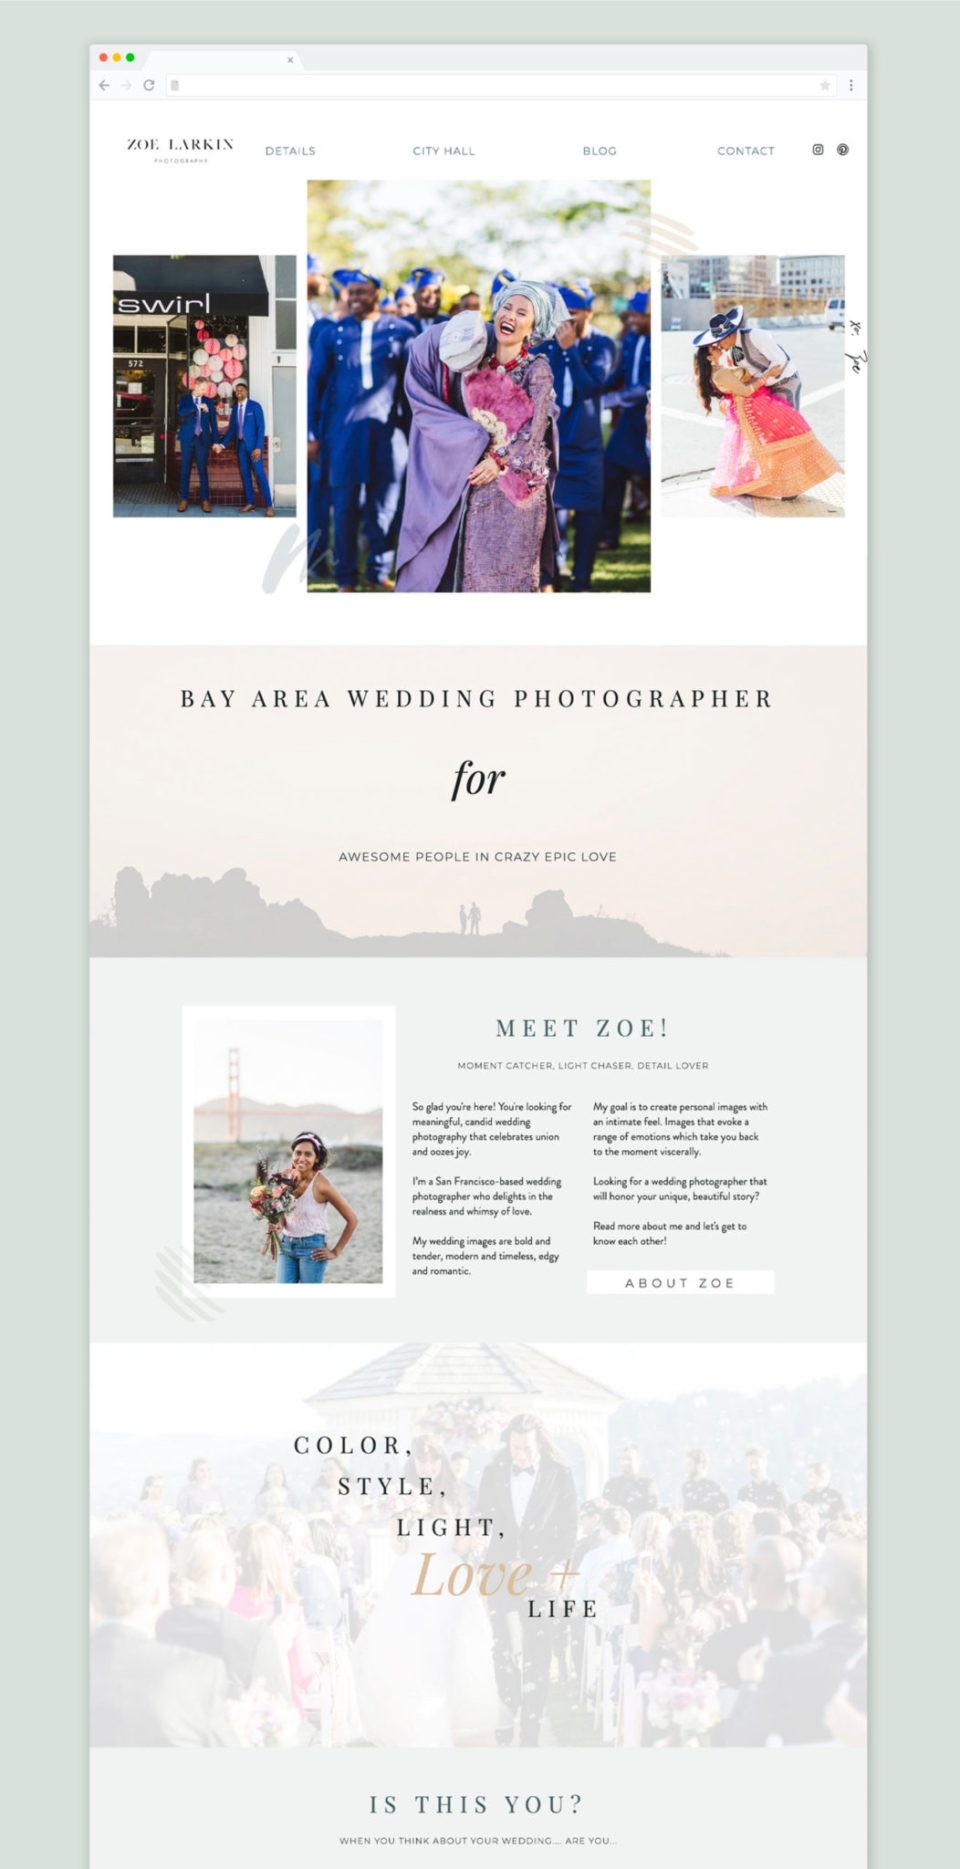 Zoe Larkin, wedding photographer's Showit website from EM Shop template.